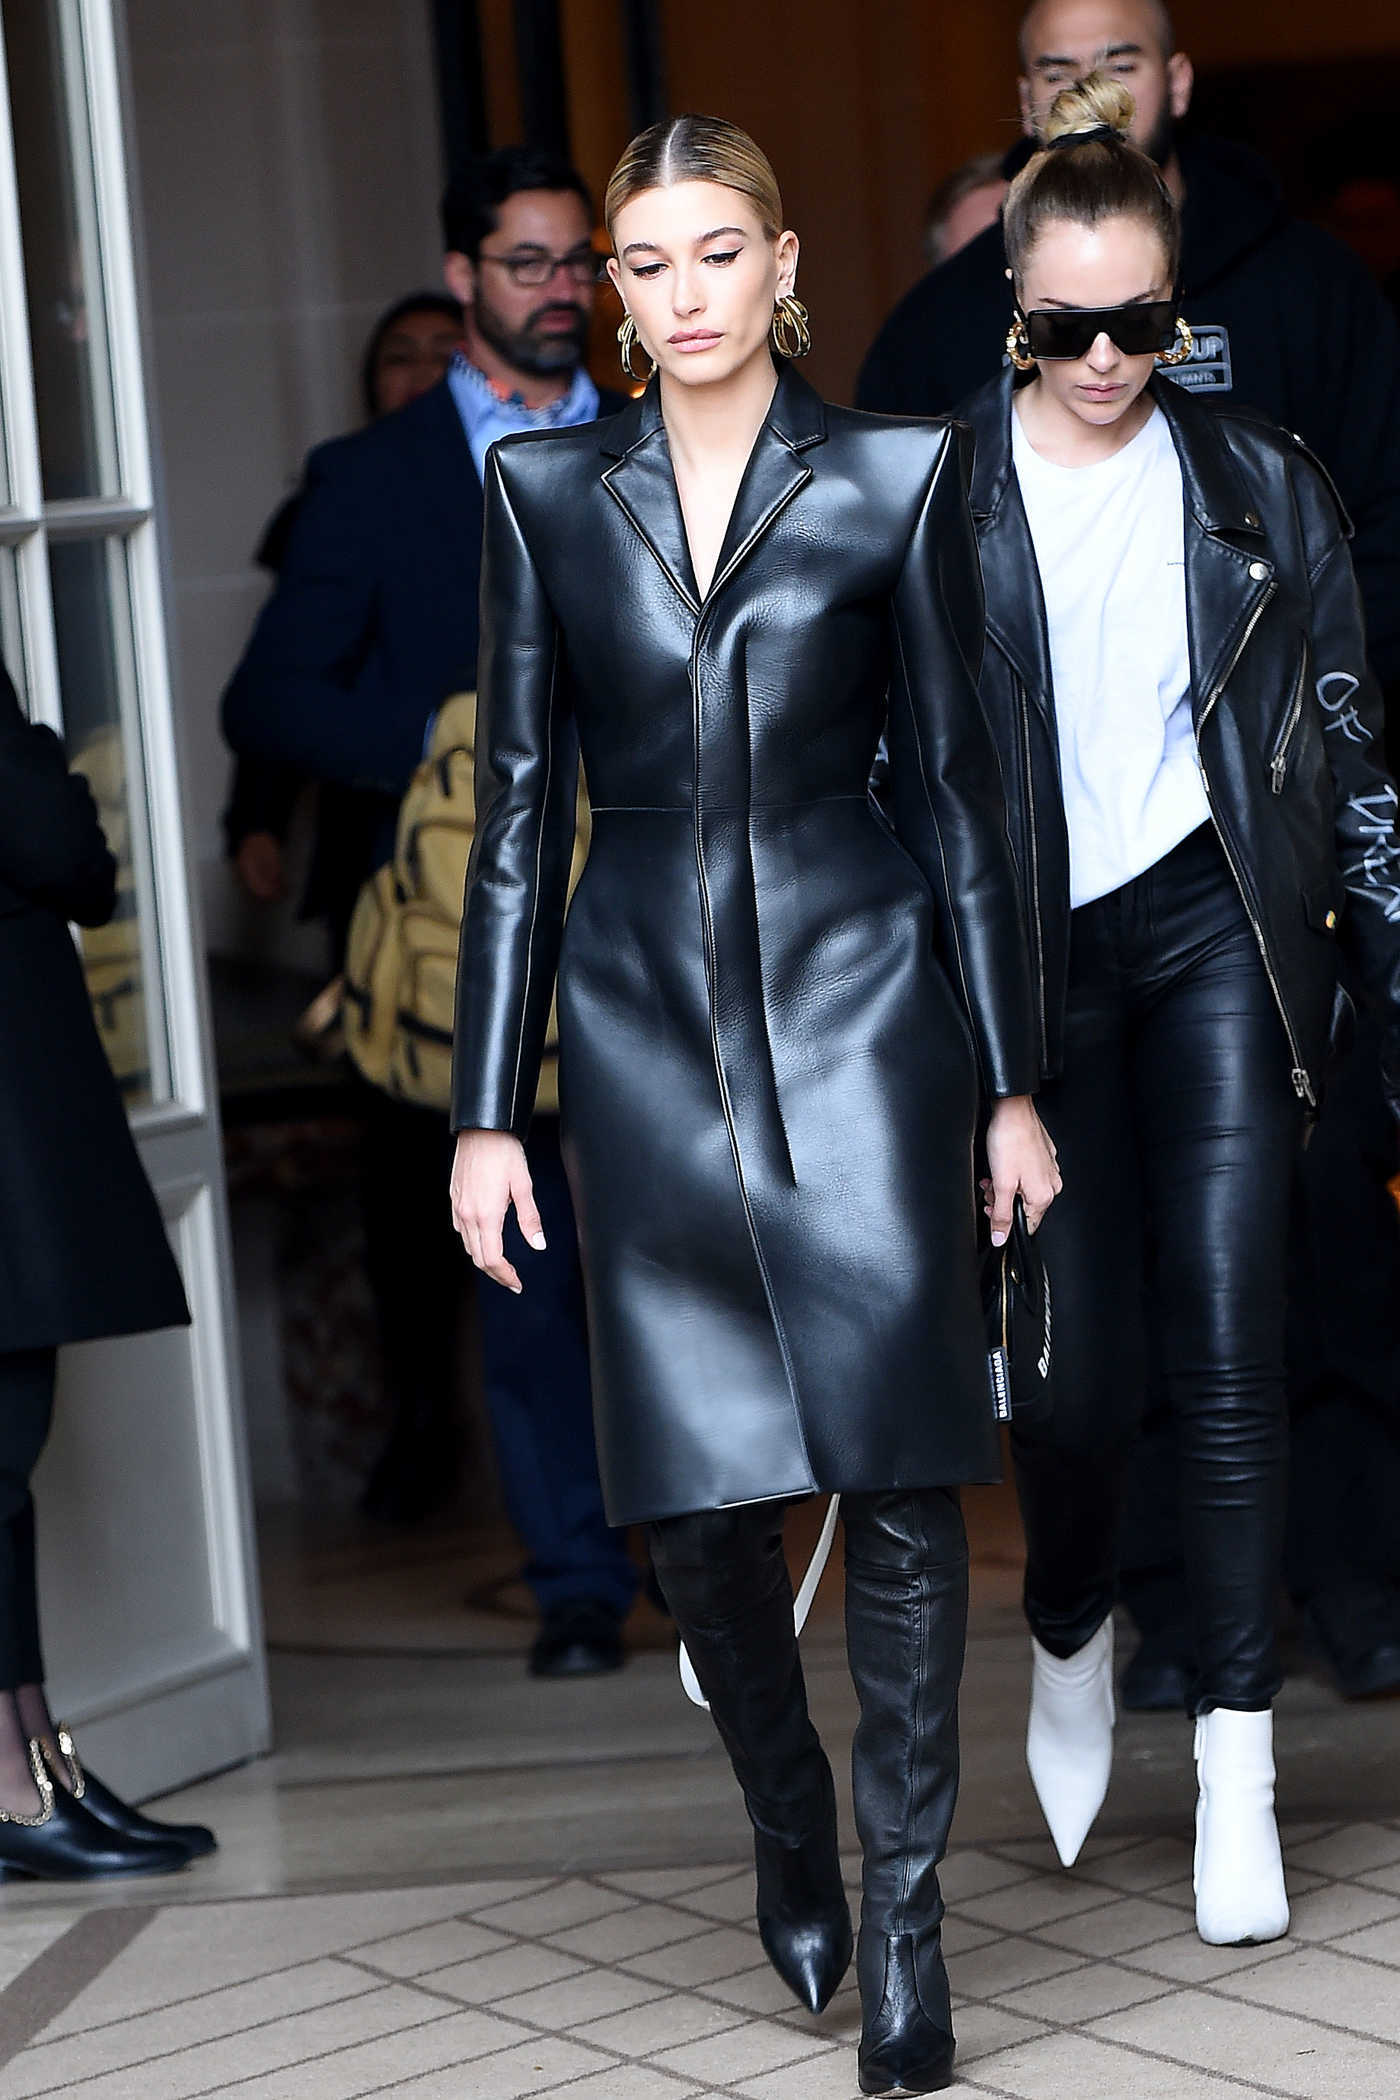 Hailey Baldwin in a Black Leather Coat Leaves Her Hotel in Paris 03/03/2019